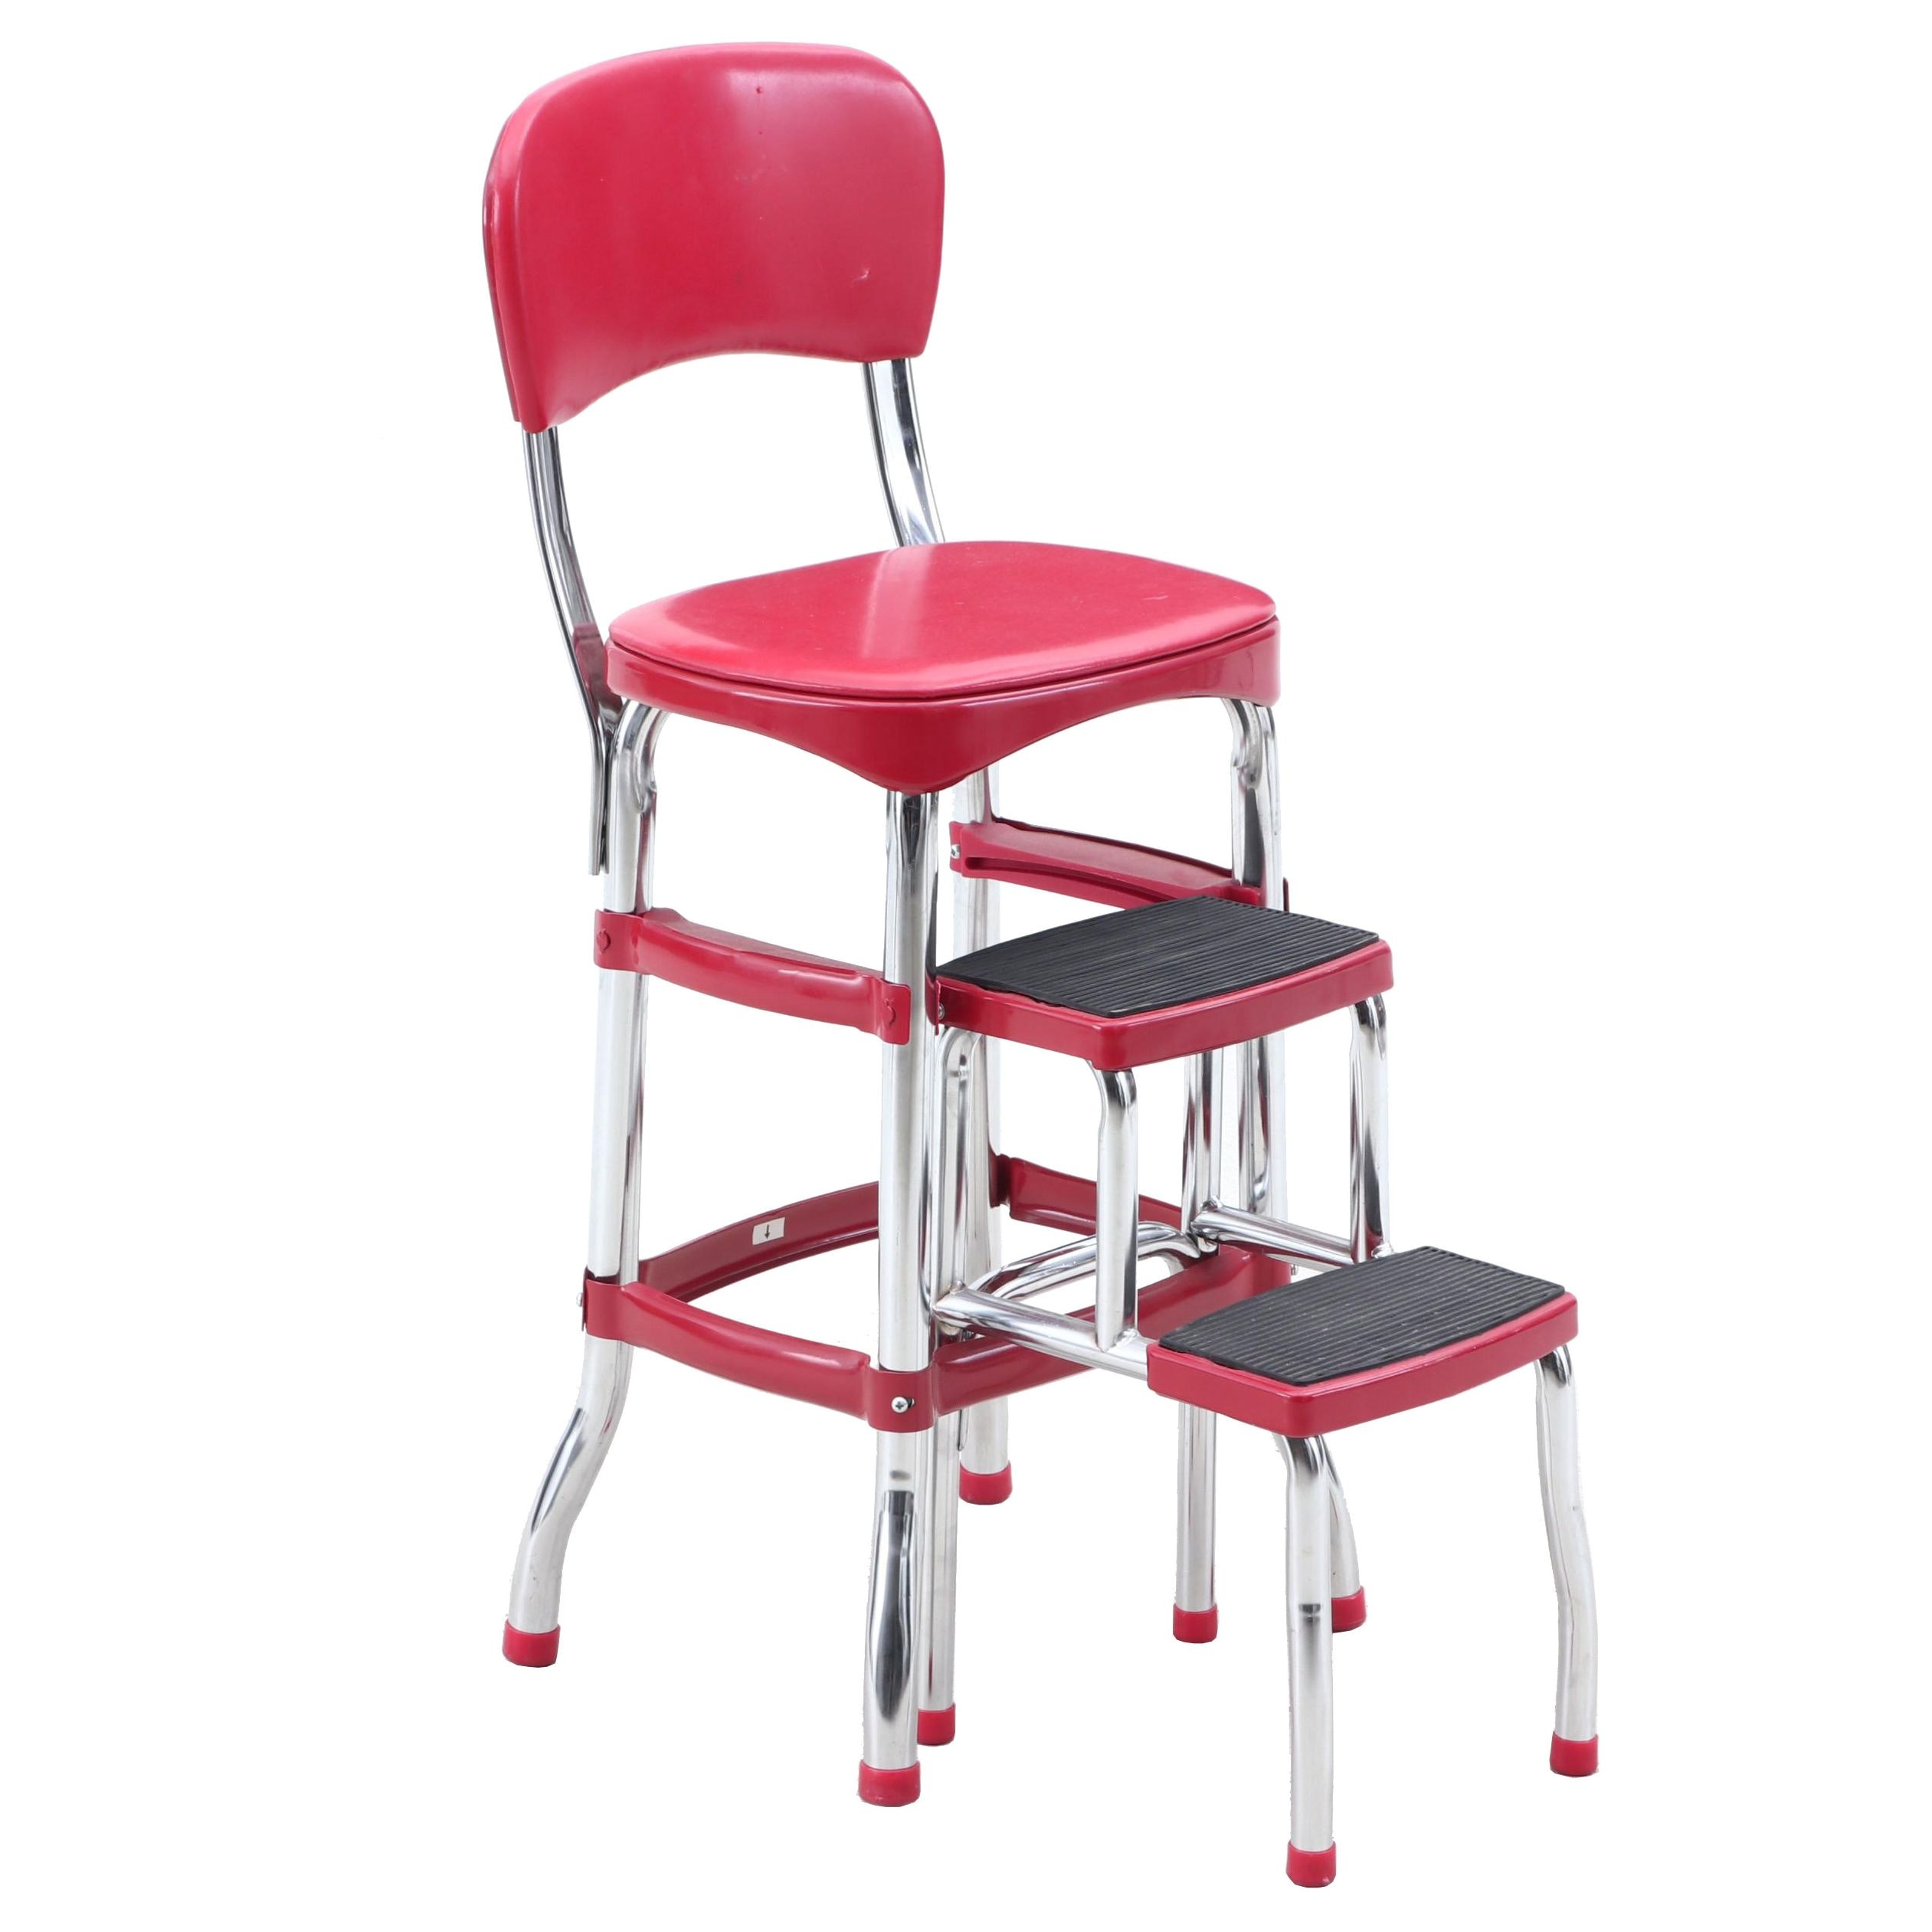 Retro Vinyl and Chrome Step Stool Chair in Red